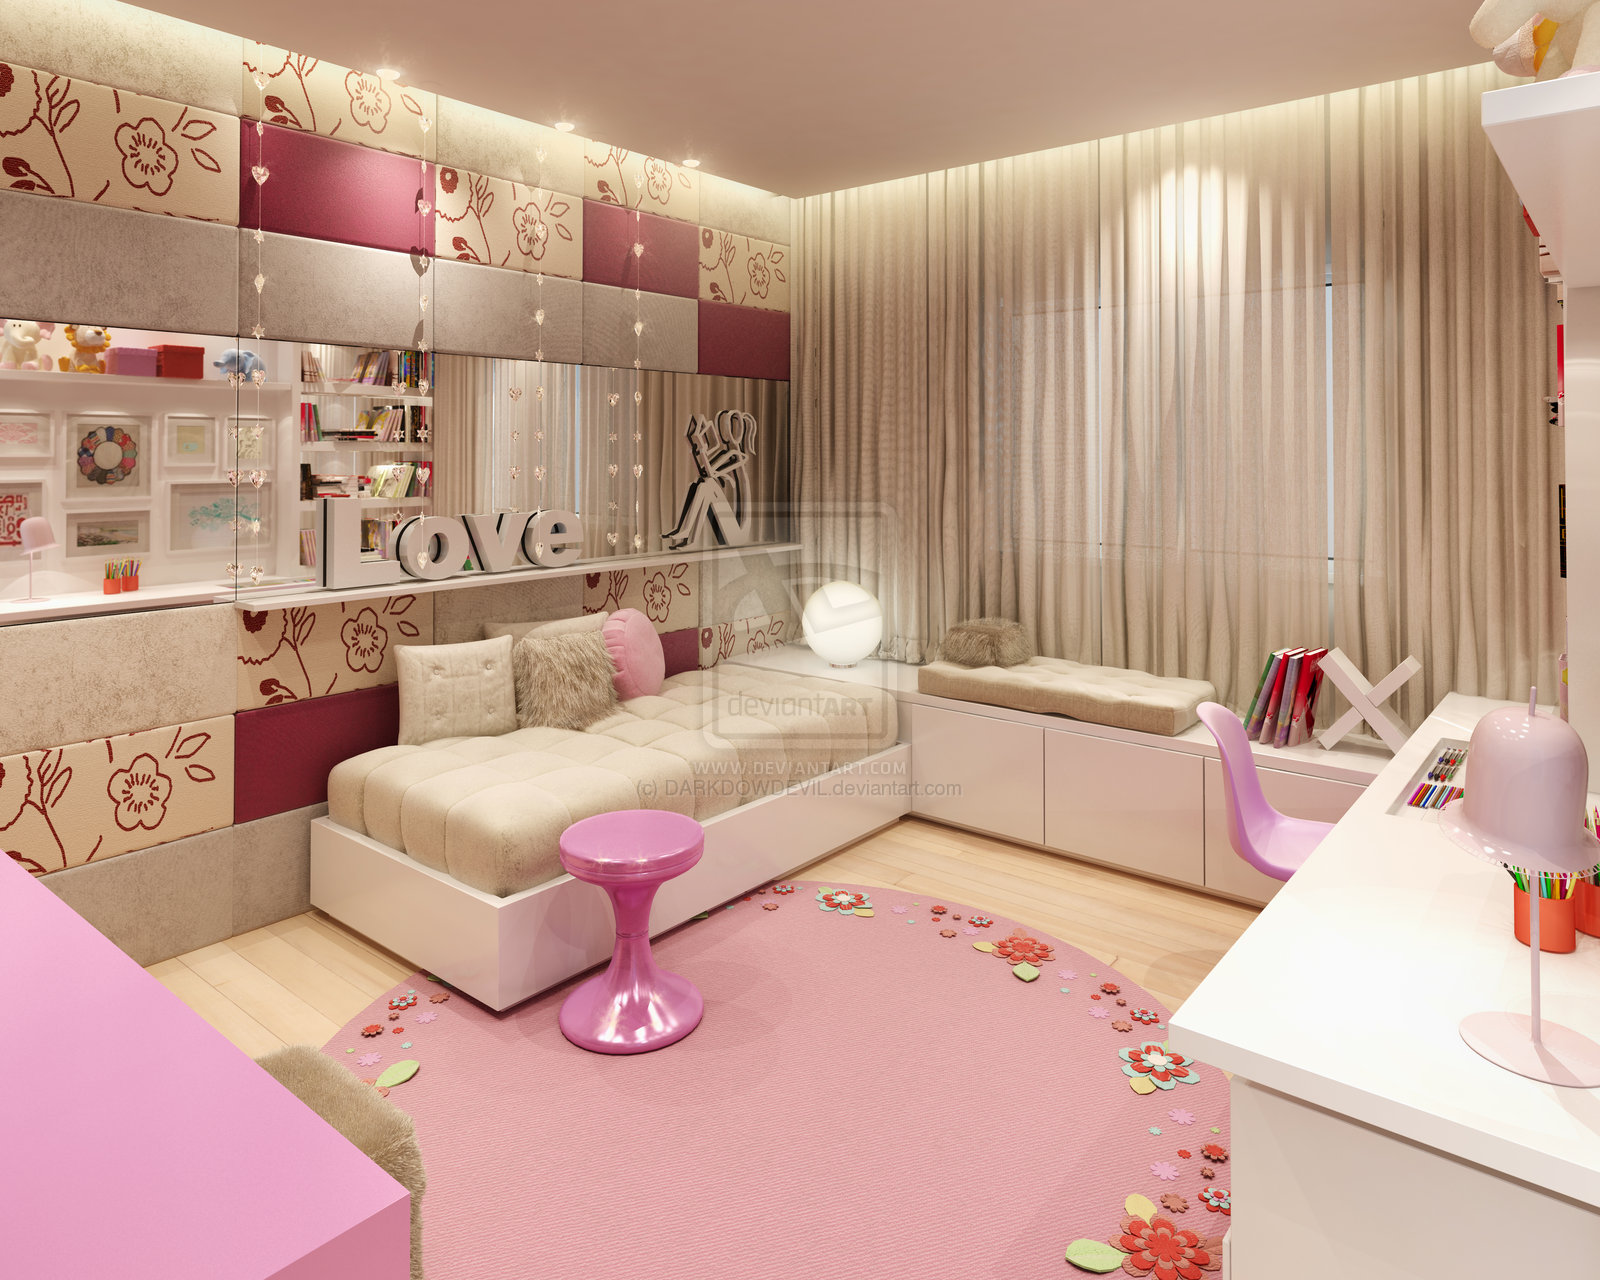 Best girl bedrooms in the world home decor and interior for Girl bedroom ideas pictures